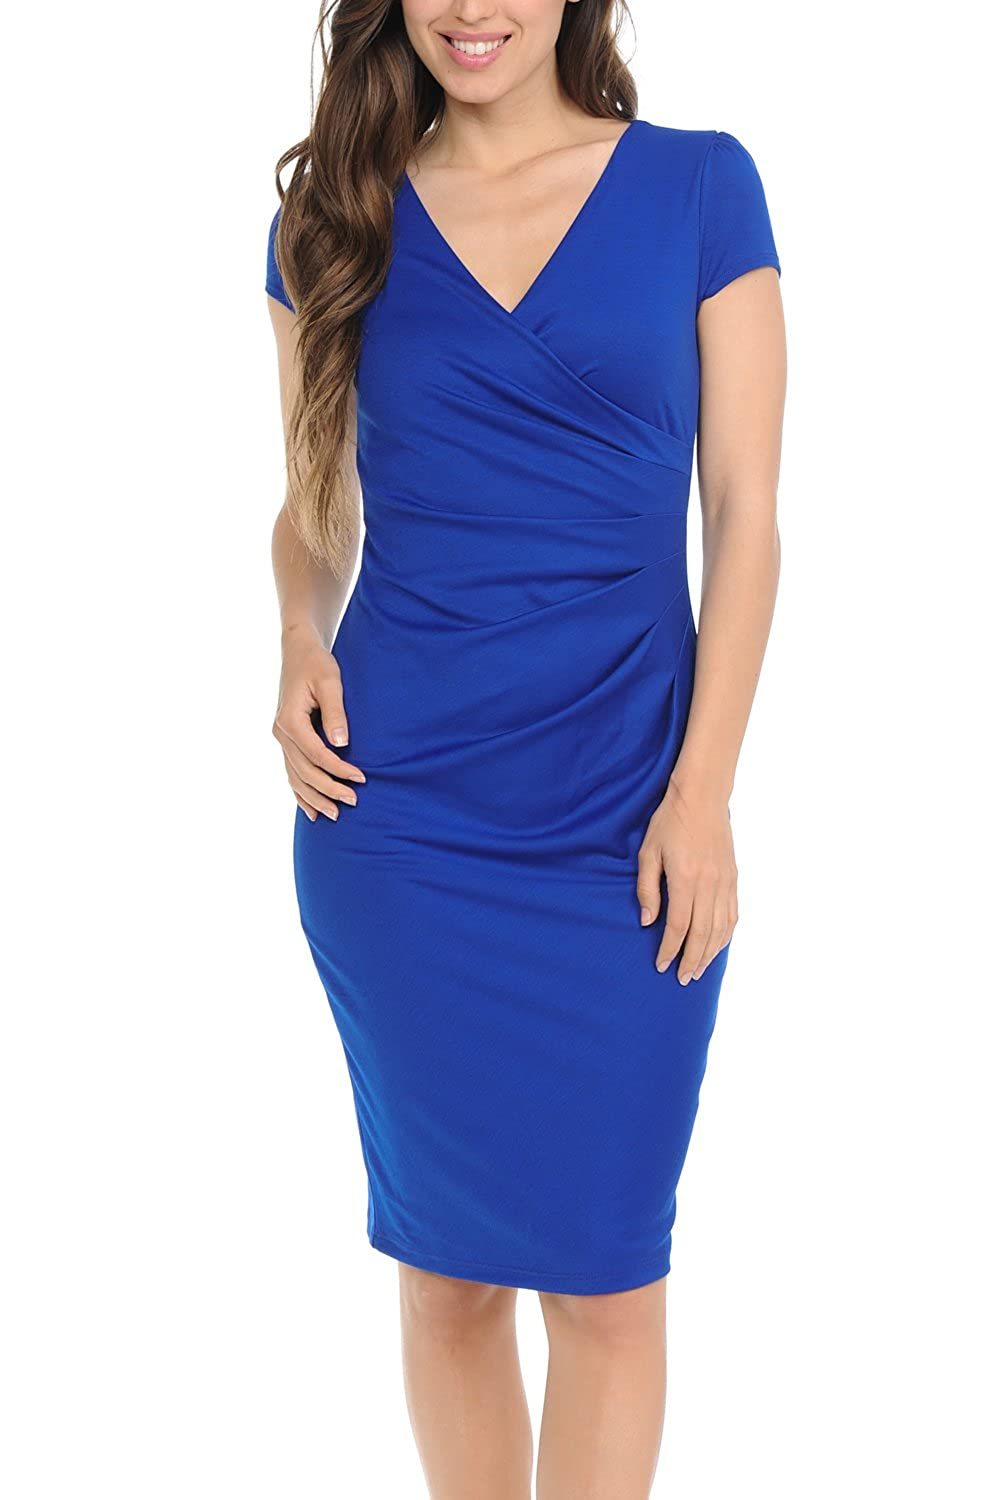 Royal bluee Auliné Collection Womens VNeck Zip Up Work Office Career Side Wrap Sheath Dress